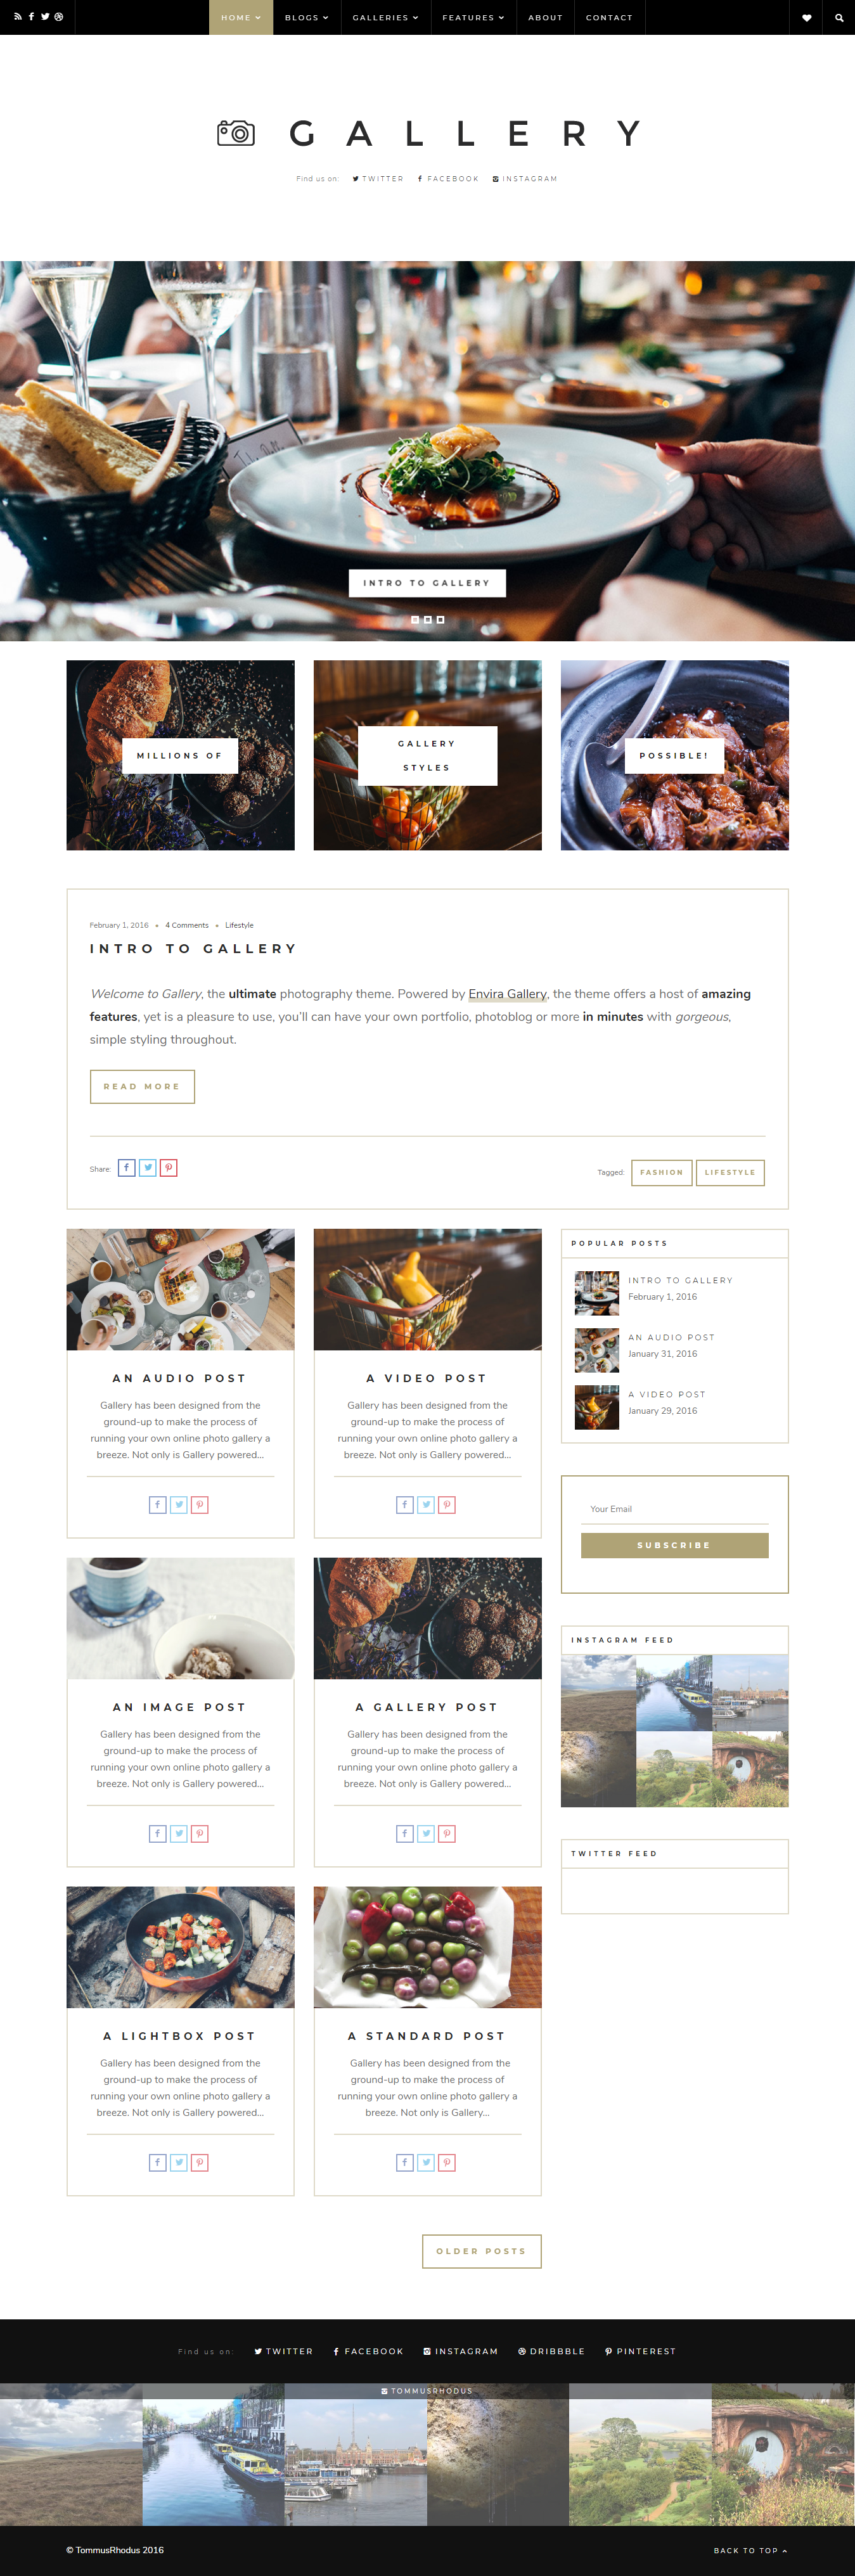 Gallery - Best Premium Gallery WordPress Theme